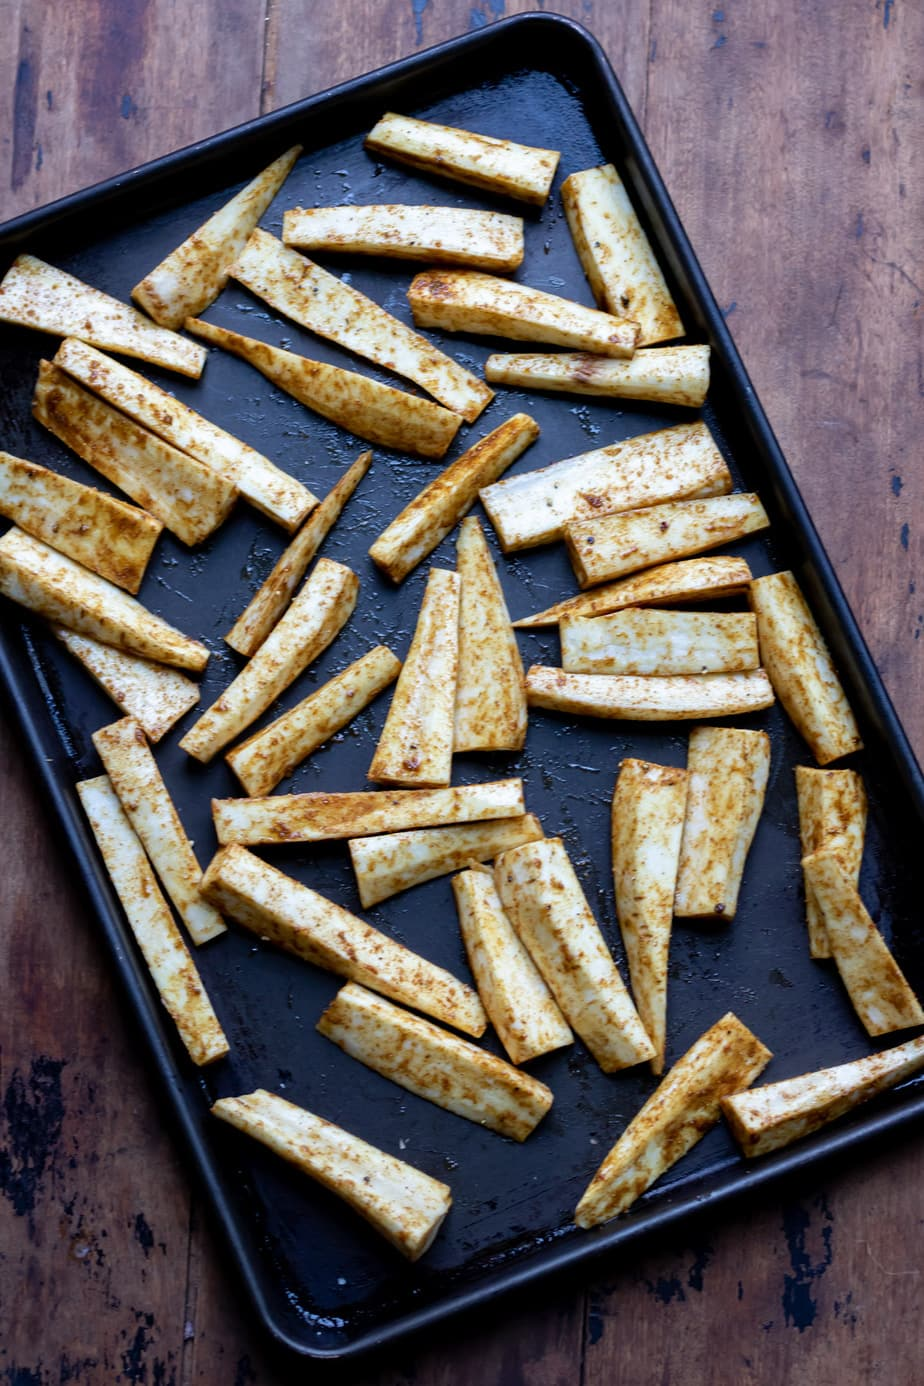 Parsnip sticks covered in spice on a baking tray.